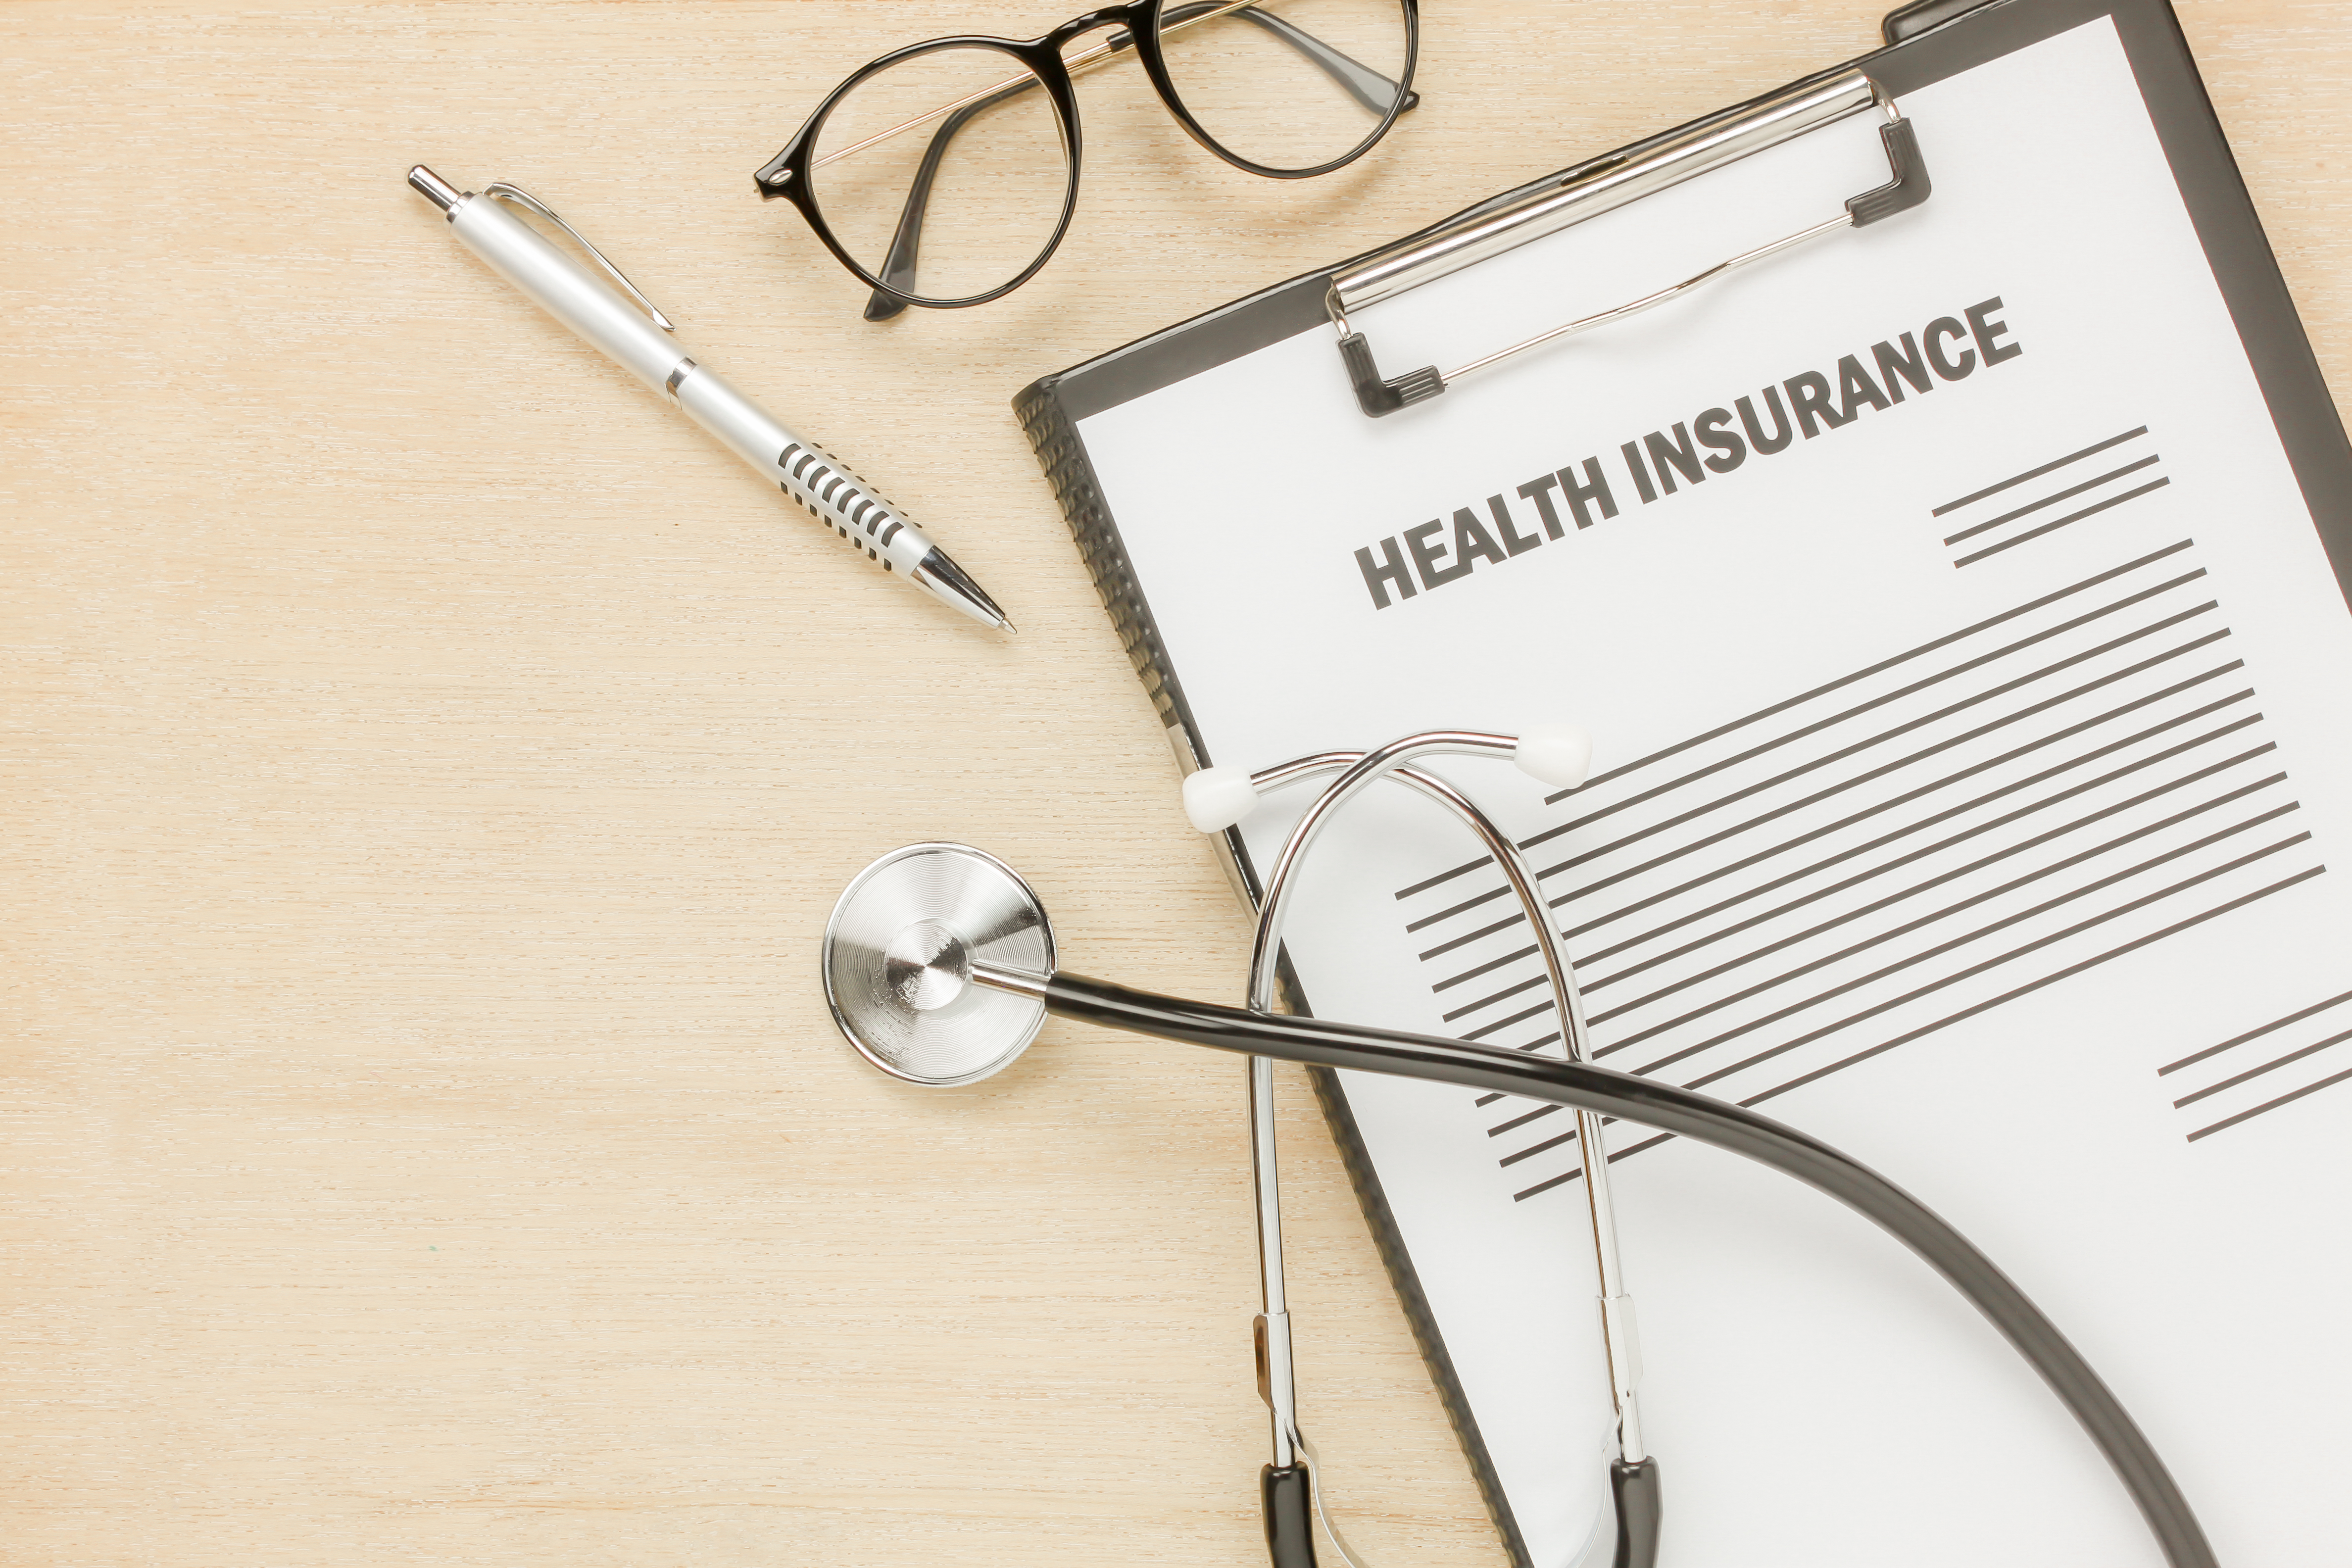 Top view health insurance form and eyeglasses with stethoscope on wooden background.business and healthcare concept.savings.flat lay.copy space.